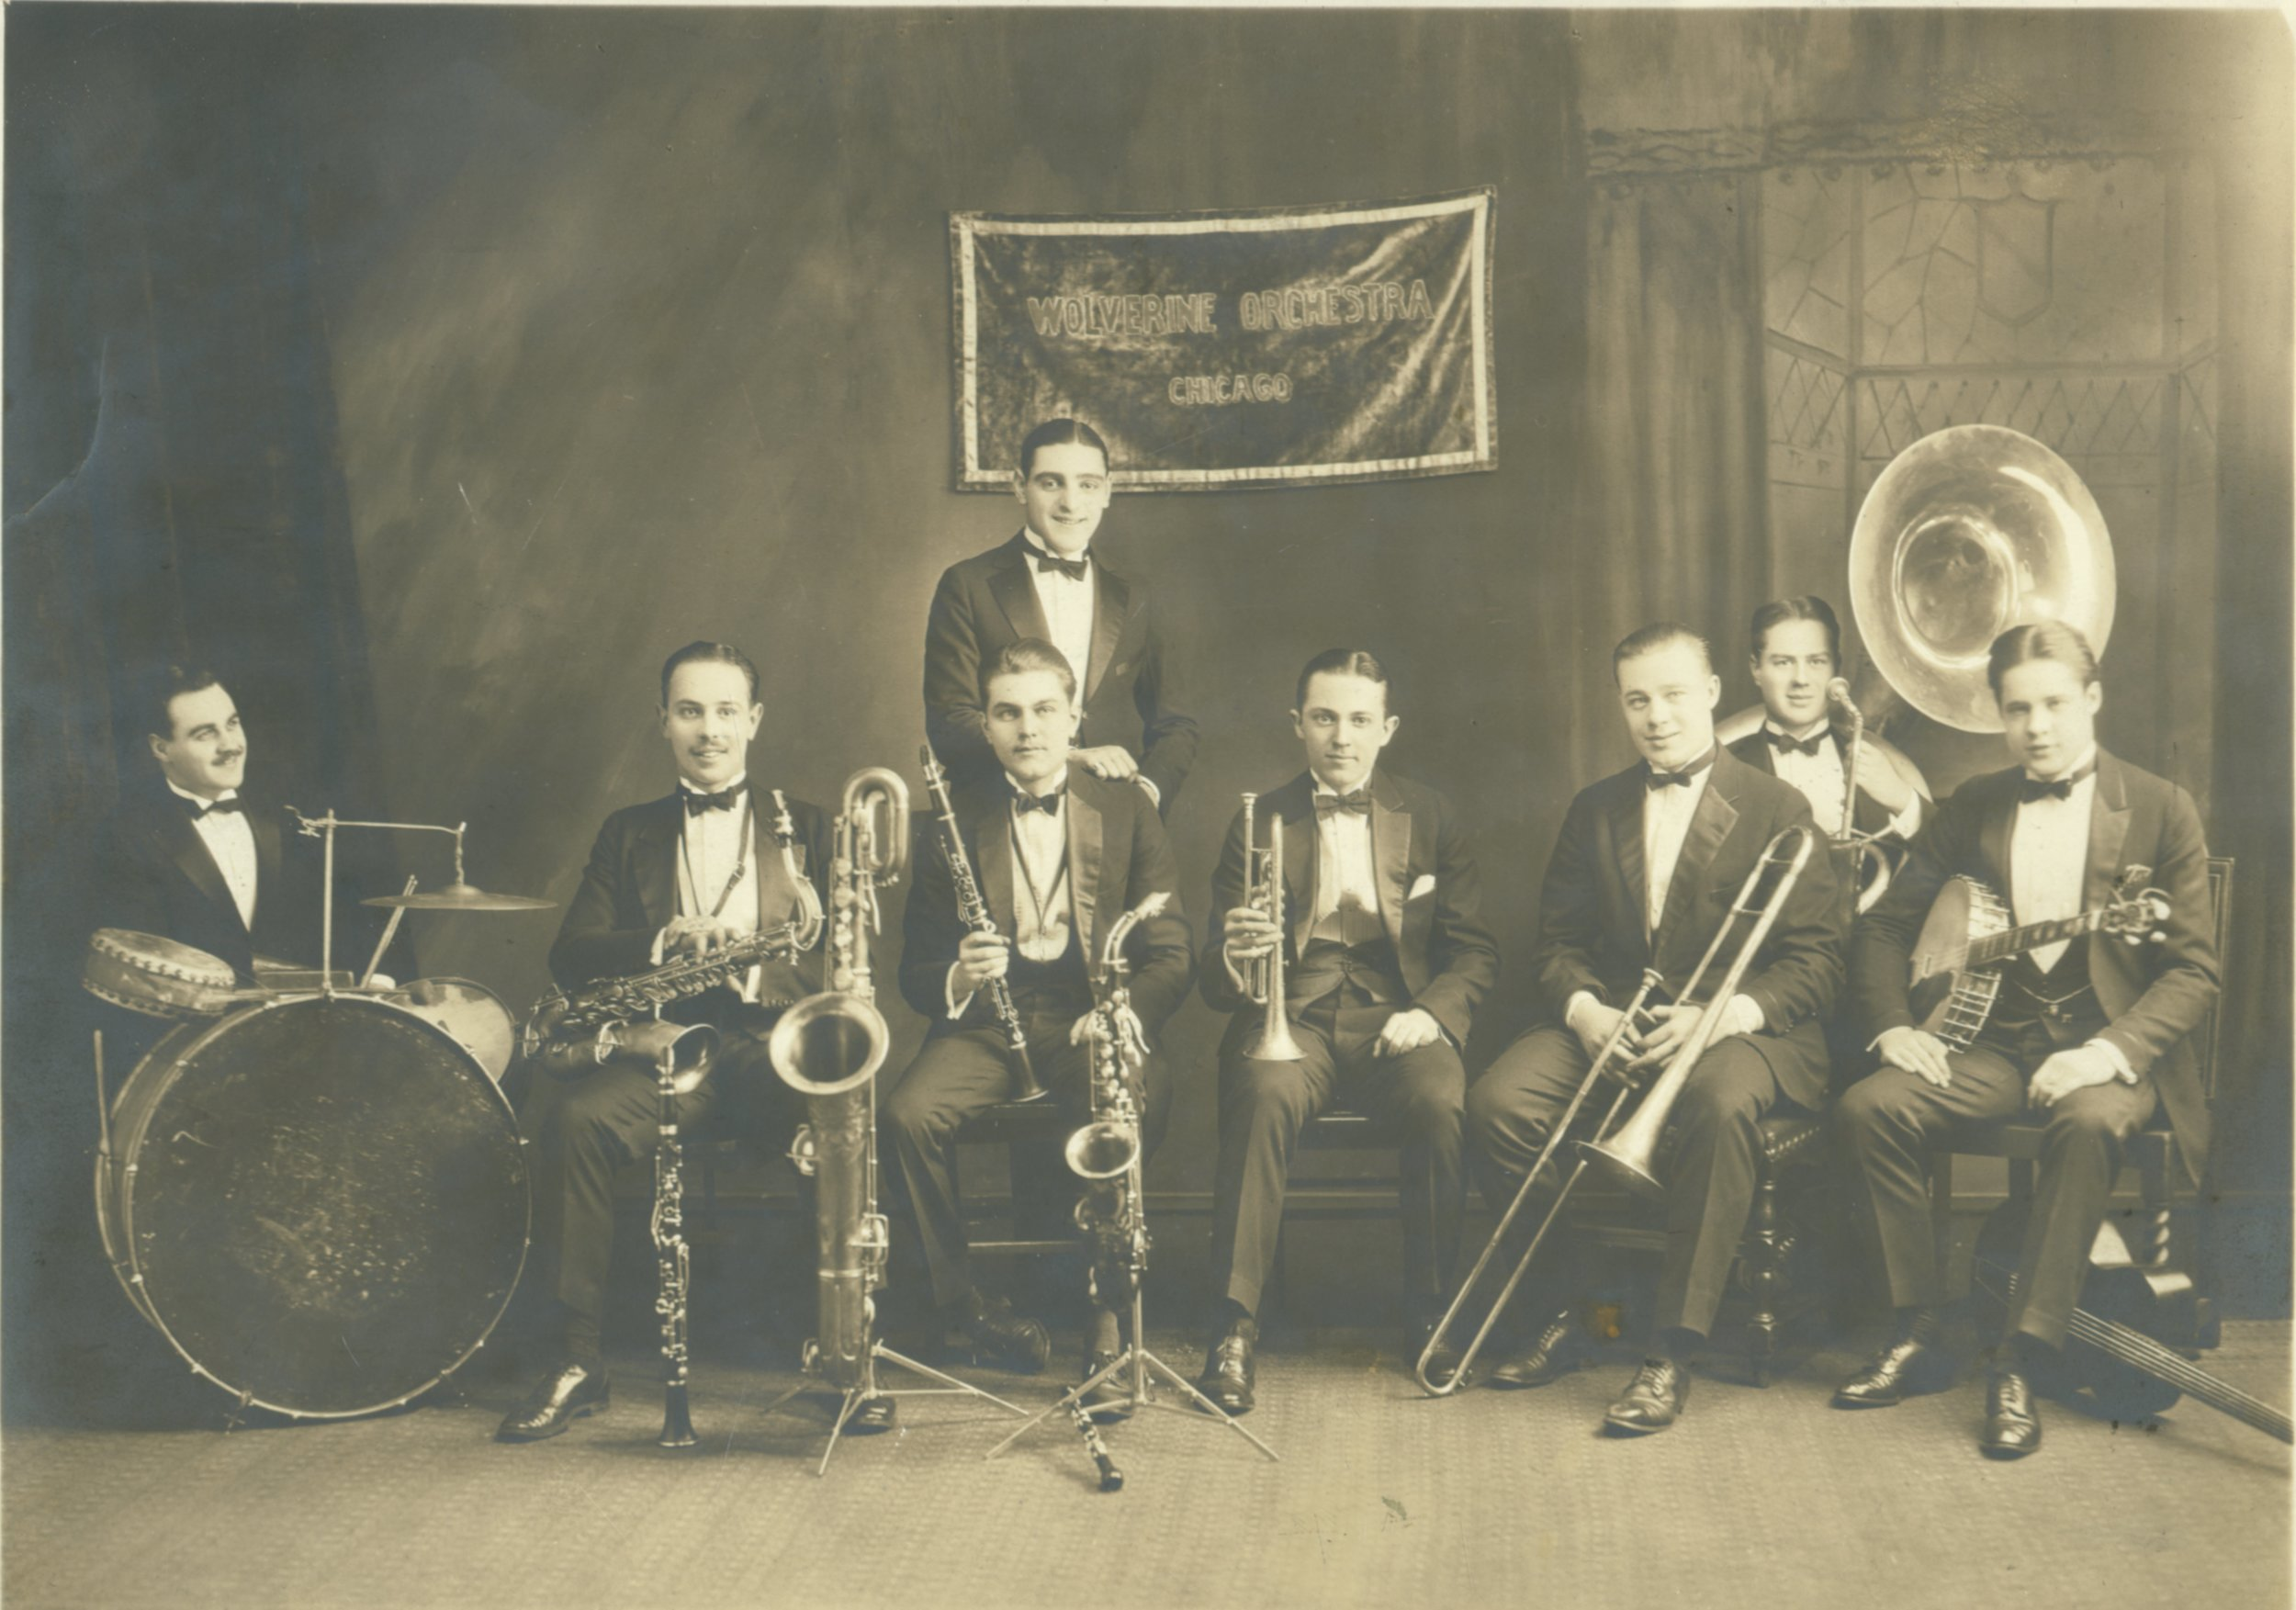 The Wolverine Orchestra poses at Doyle's Dancing Academy in Cincinnati, in January 1924. Bix Beiderbecke is seated fifth from the left. Courtesy of the Richardson-Sloane Special Collections Center of the Davenport (Iowa) Public Library.